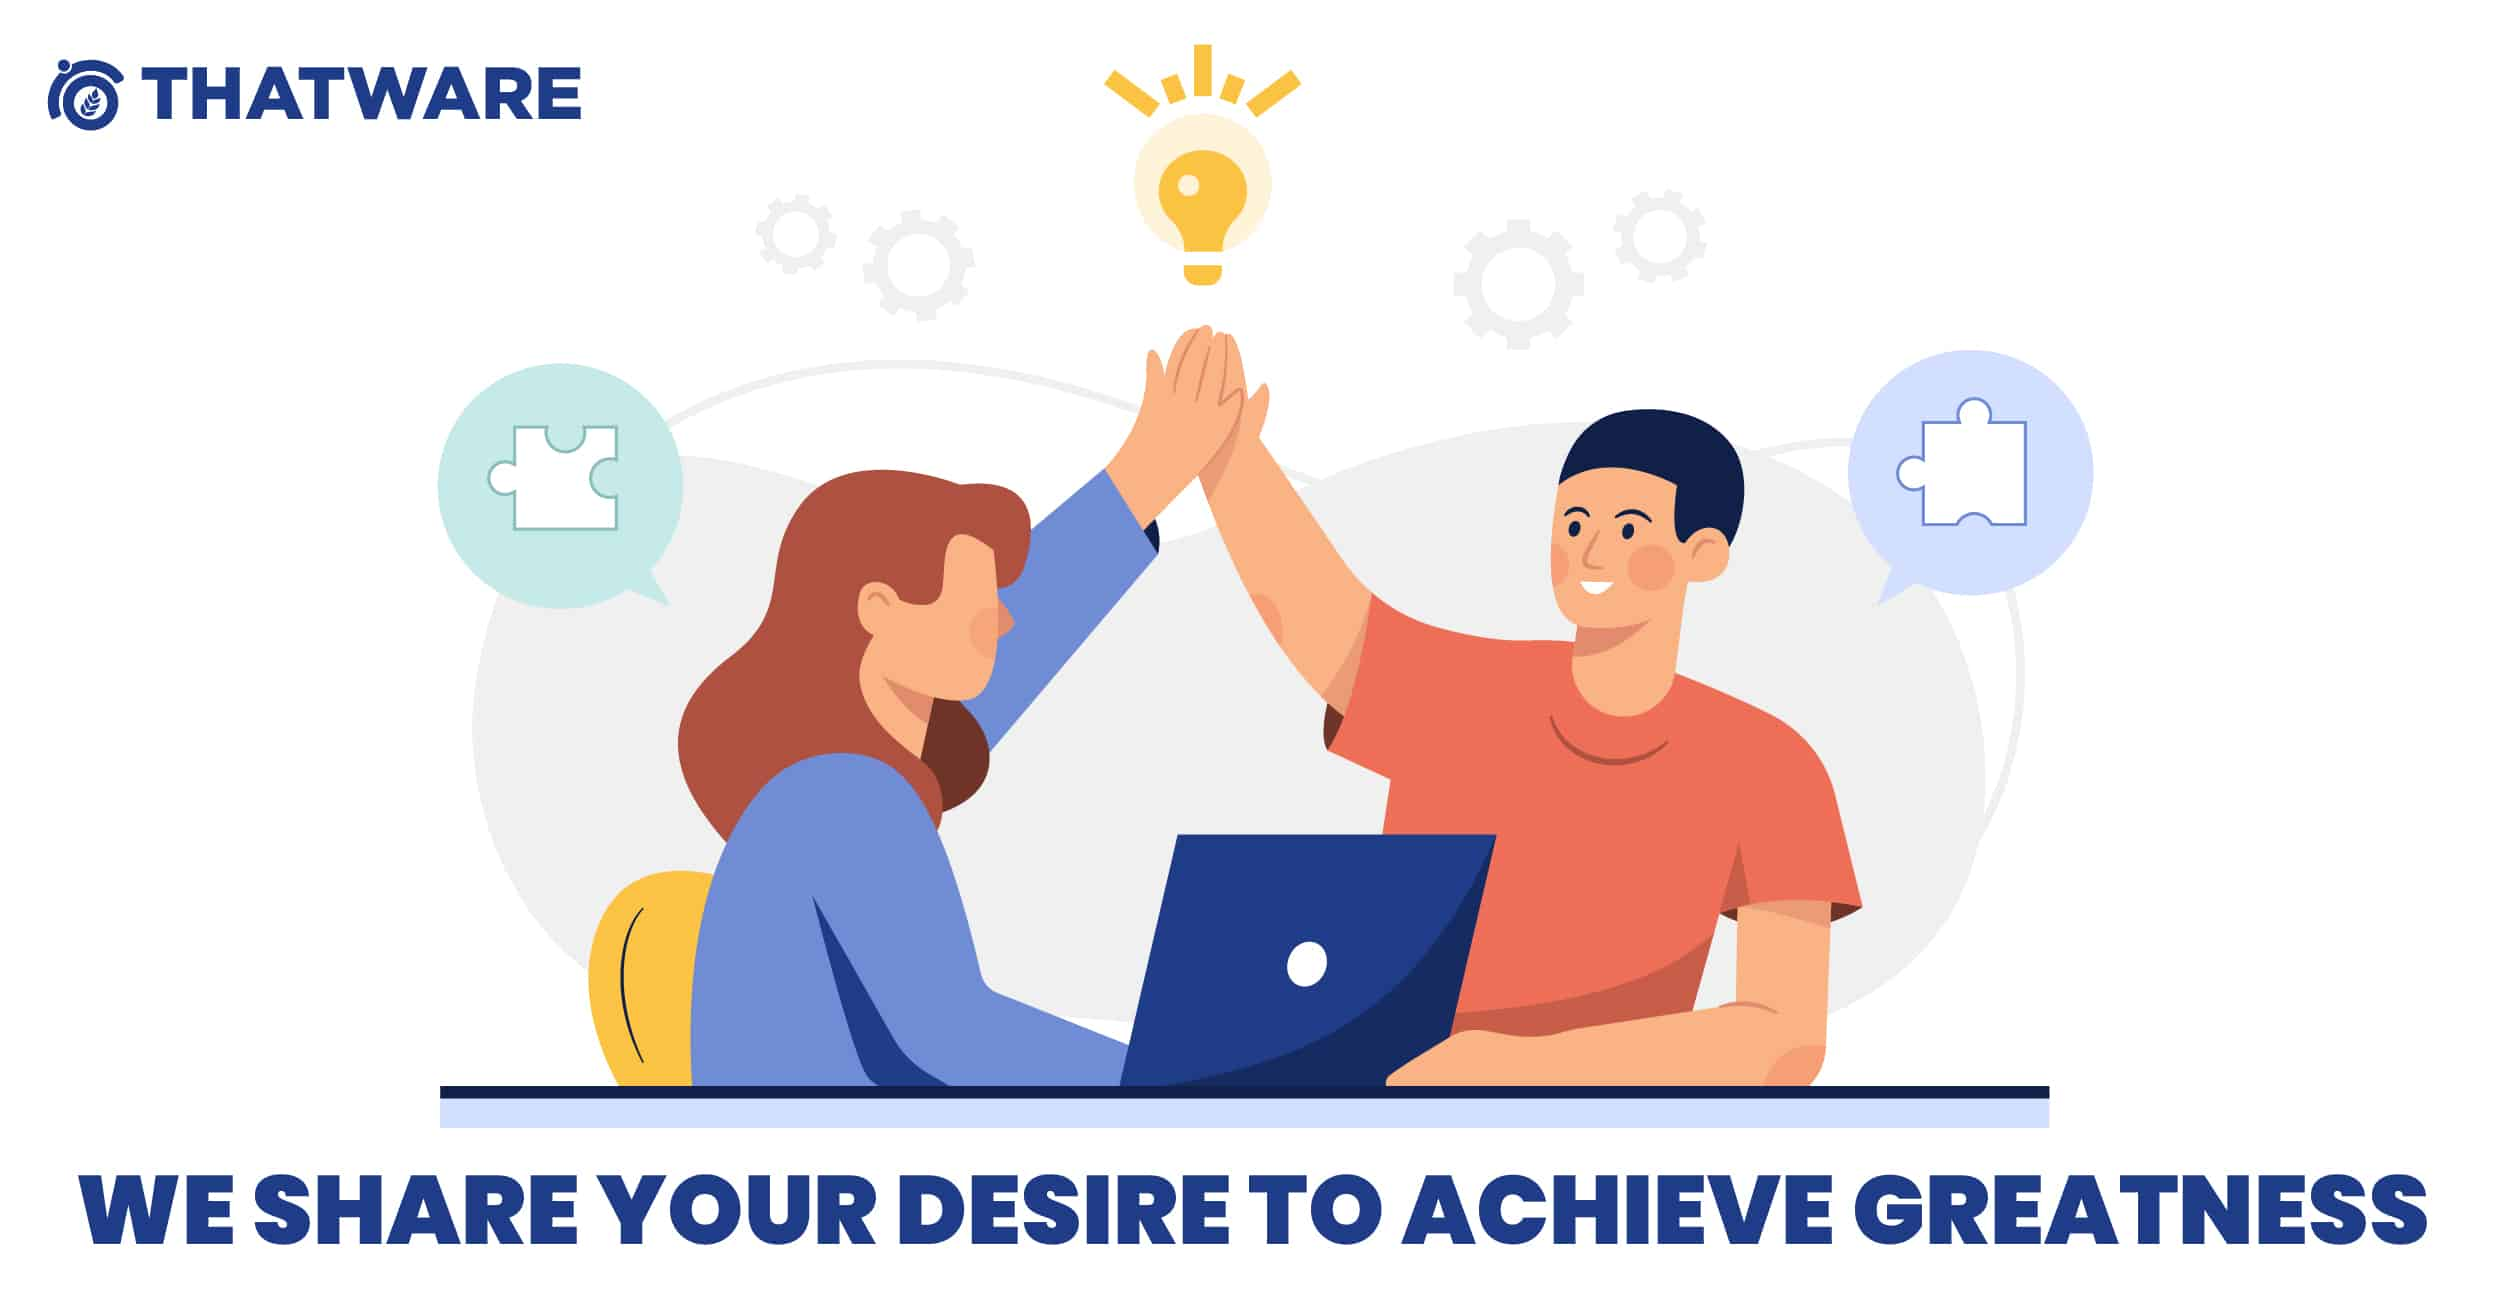 YOUR DESIRE TO ACHIEVE GREATNESS